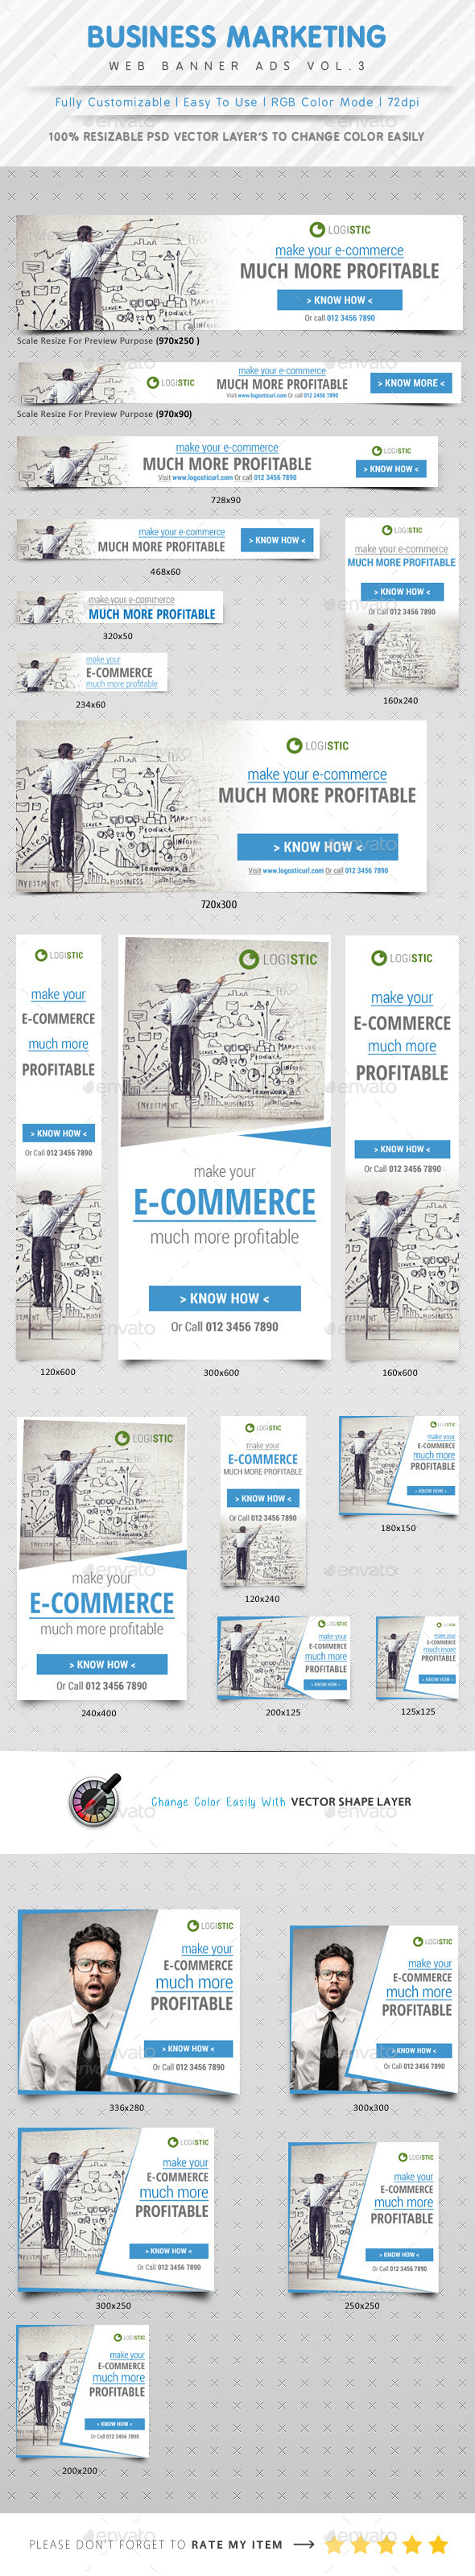 Marketing Web Banner Ads Vol.3 - Banners & Ads Web Elements